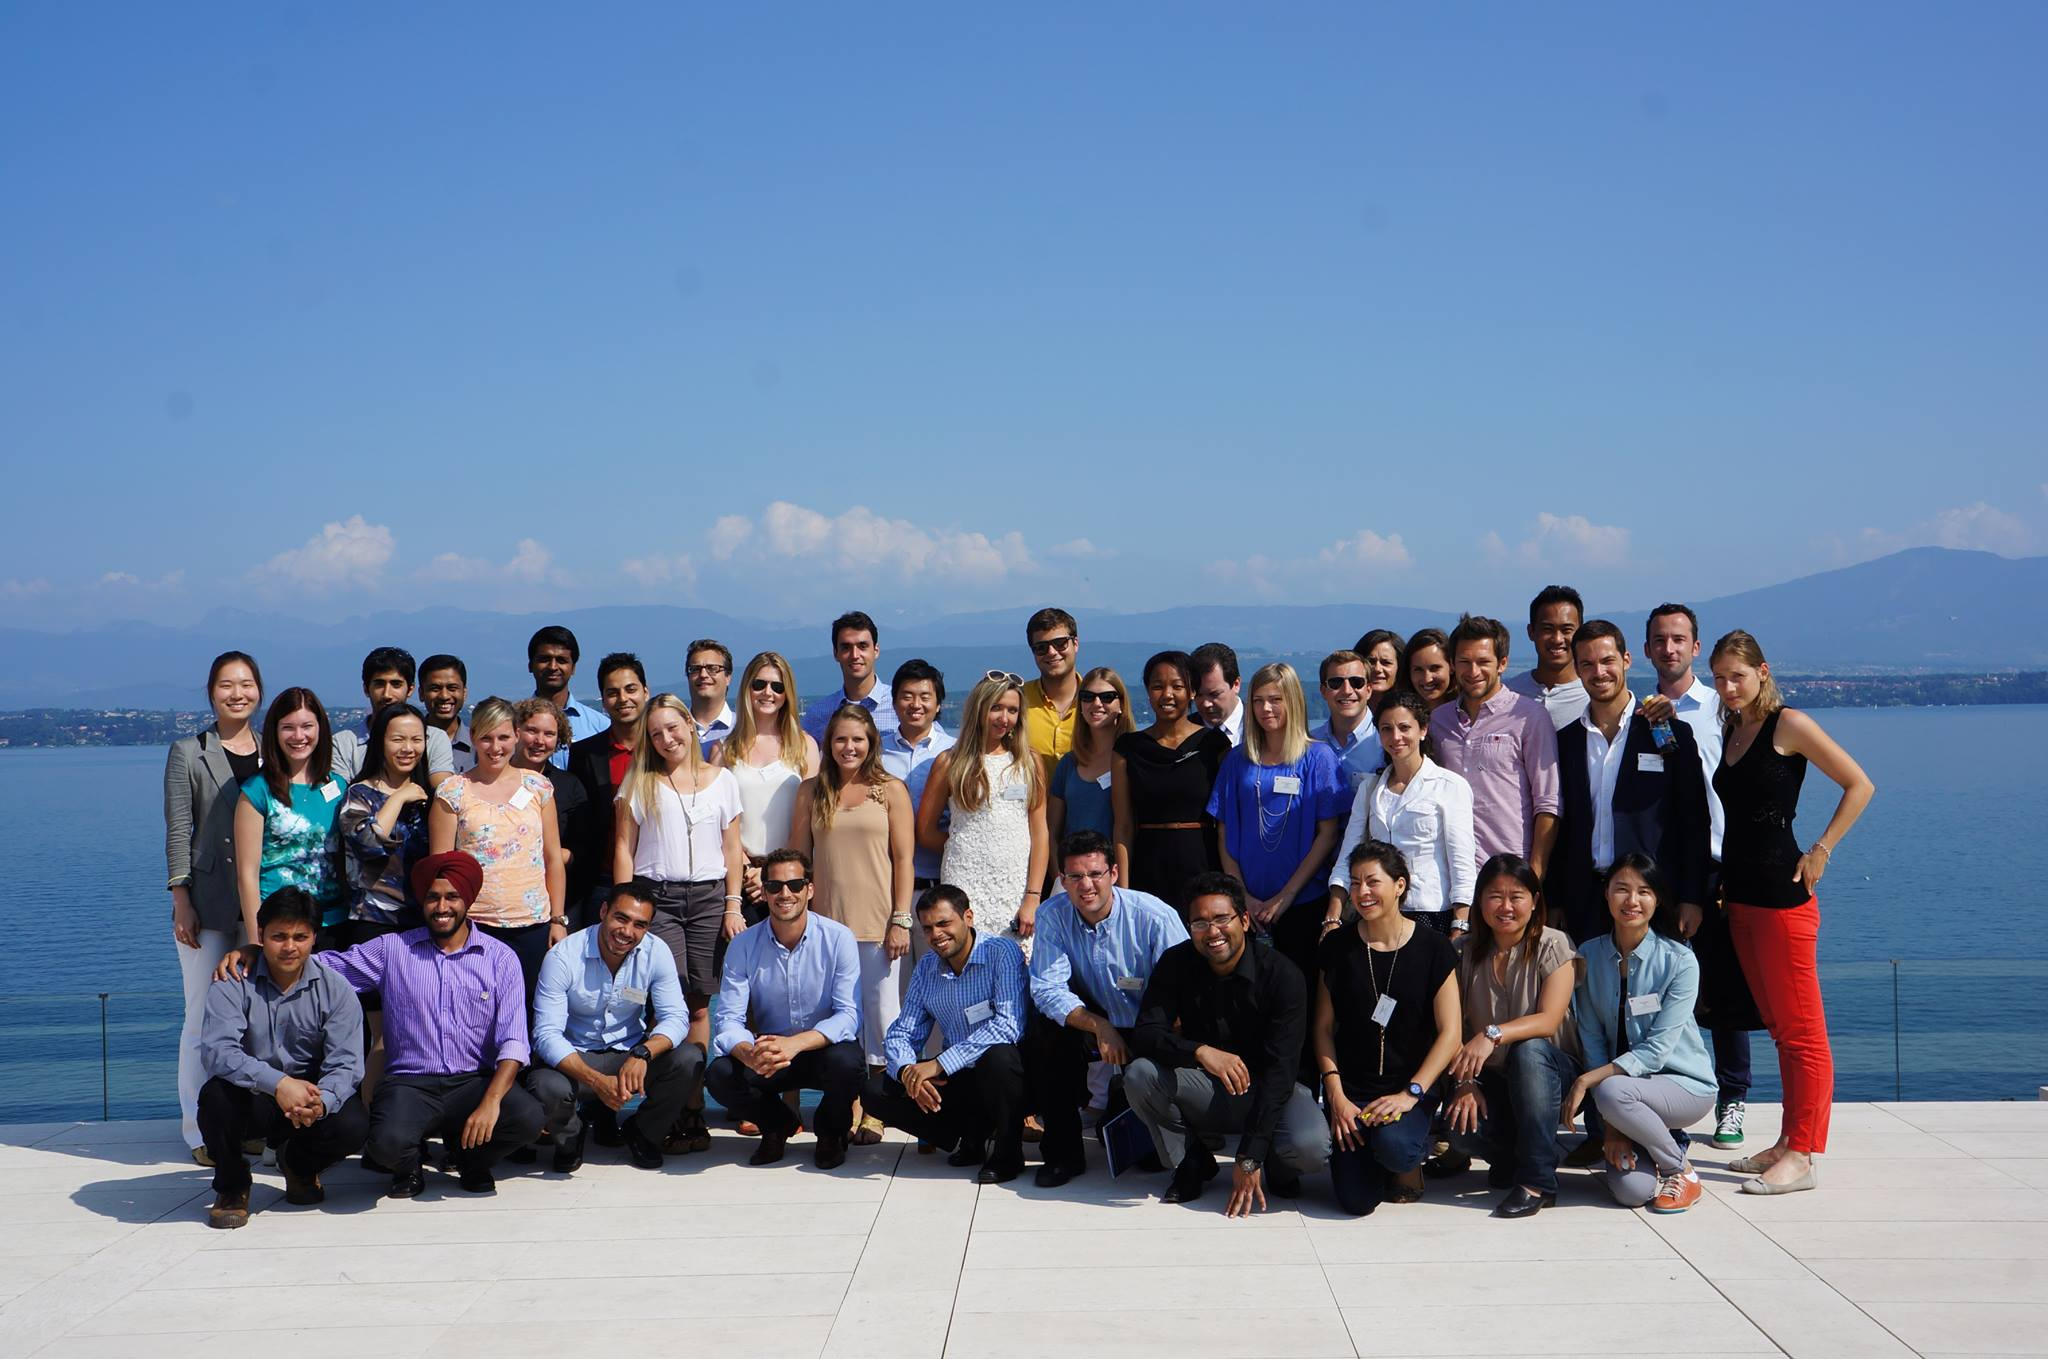 The AISTS MSA class of 2013 pose on the roof of the UEFA building in front of Lake Geneva © AISTS